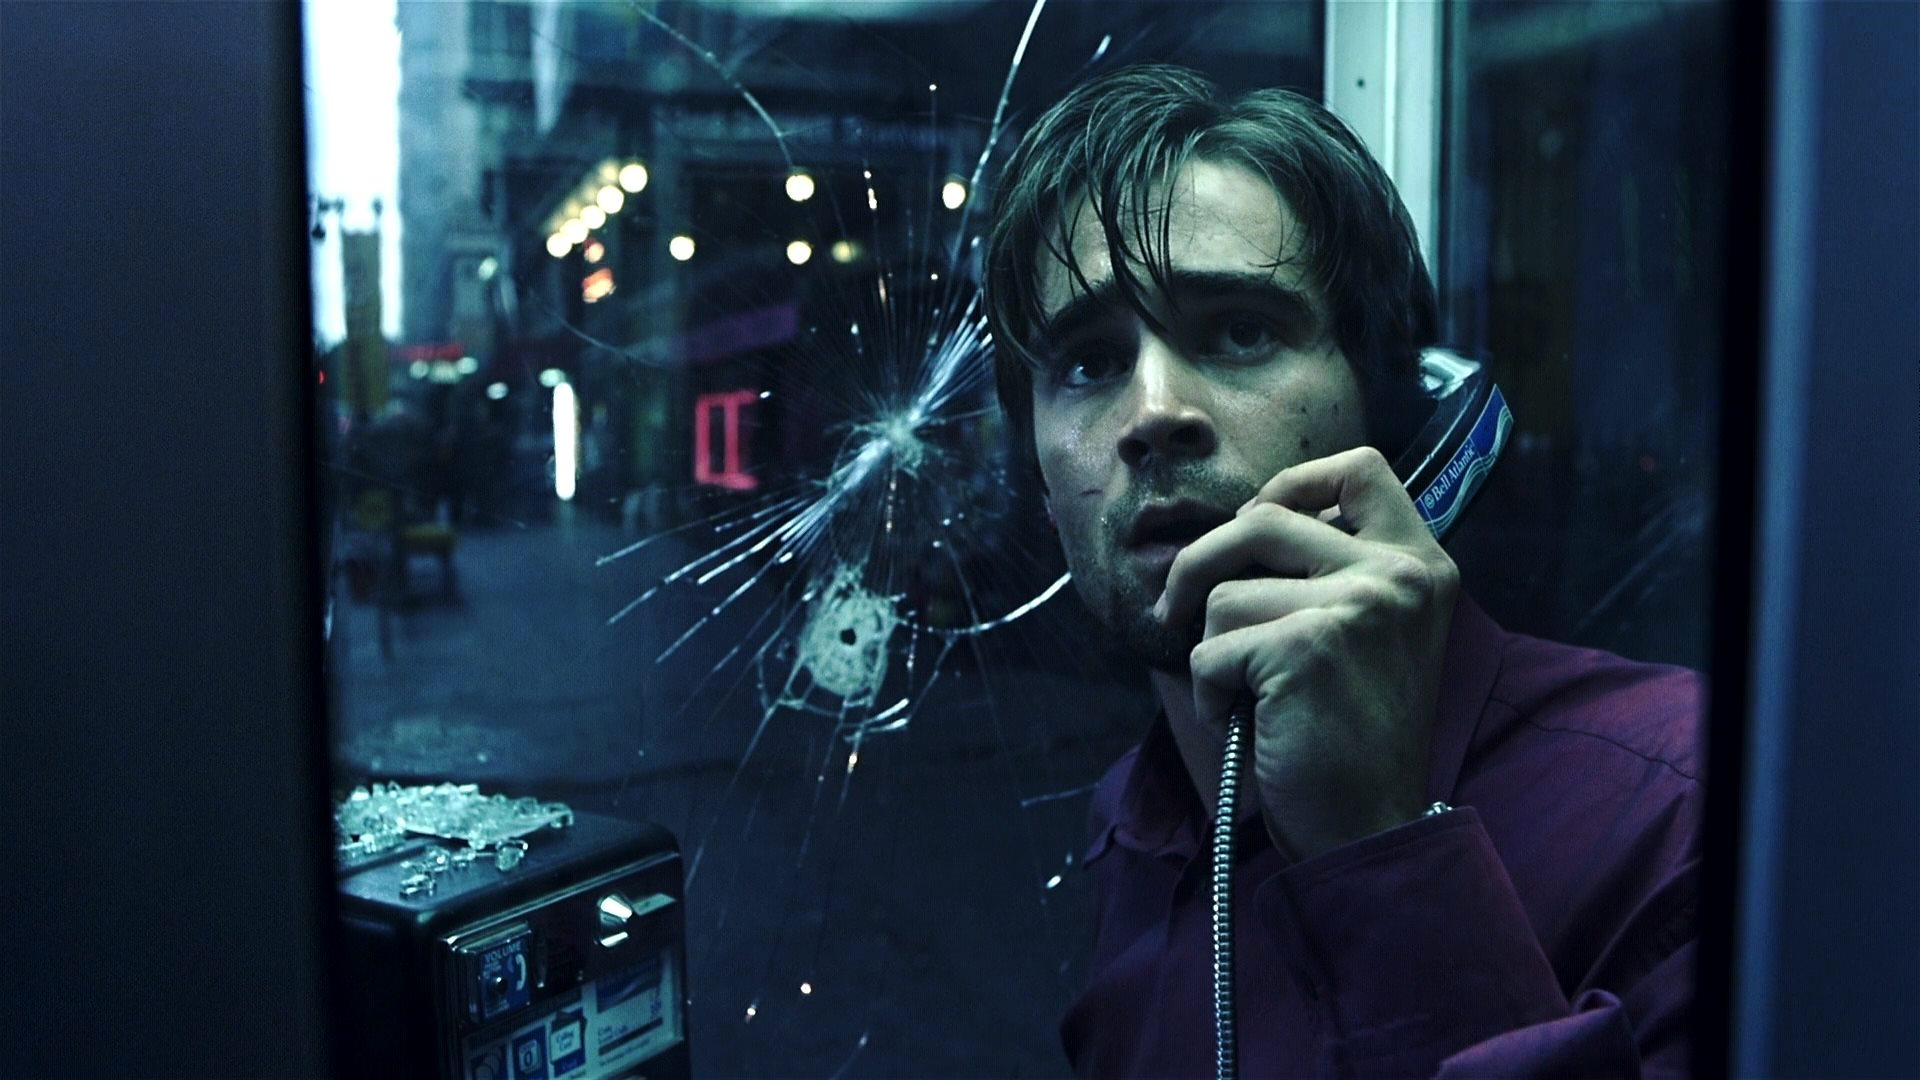 Colin Farrell trapped in a phone booth by a sniper in Phone Booth (2002)